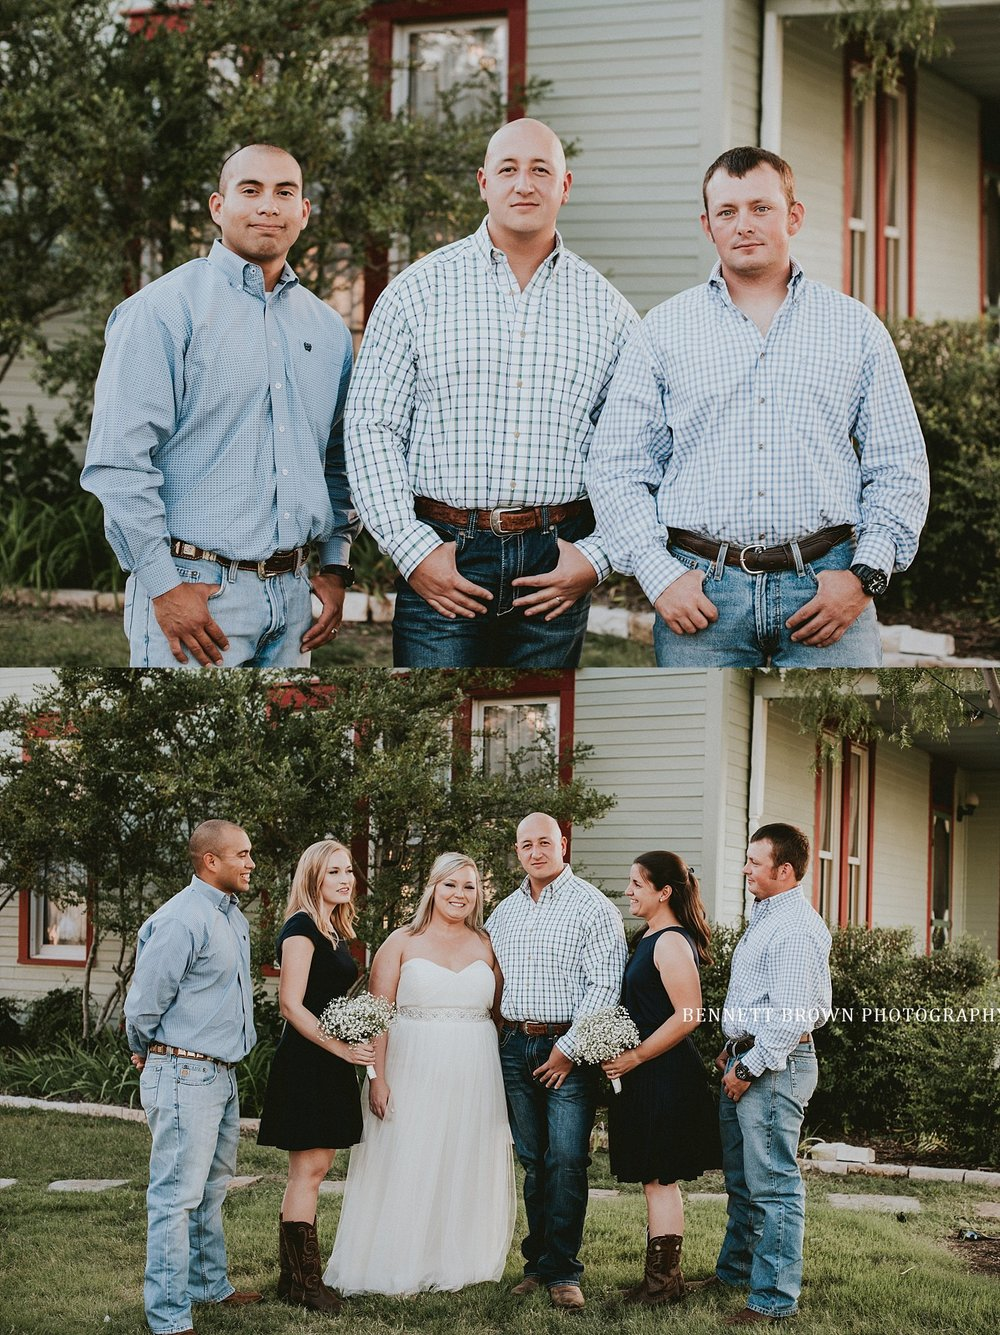 Bennett Brown Photography Frisco Texas Wedding Portraits Bridal Party